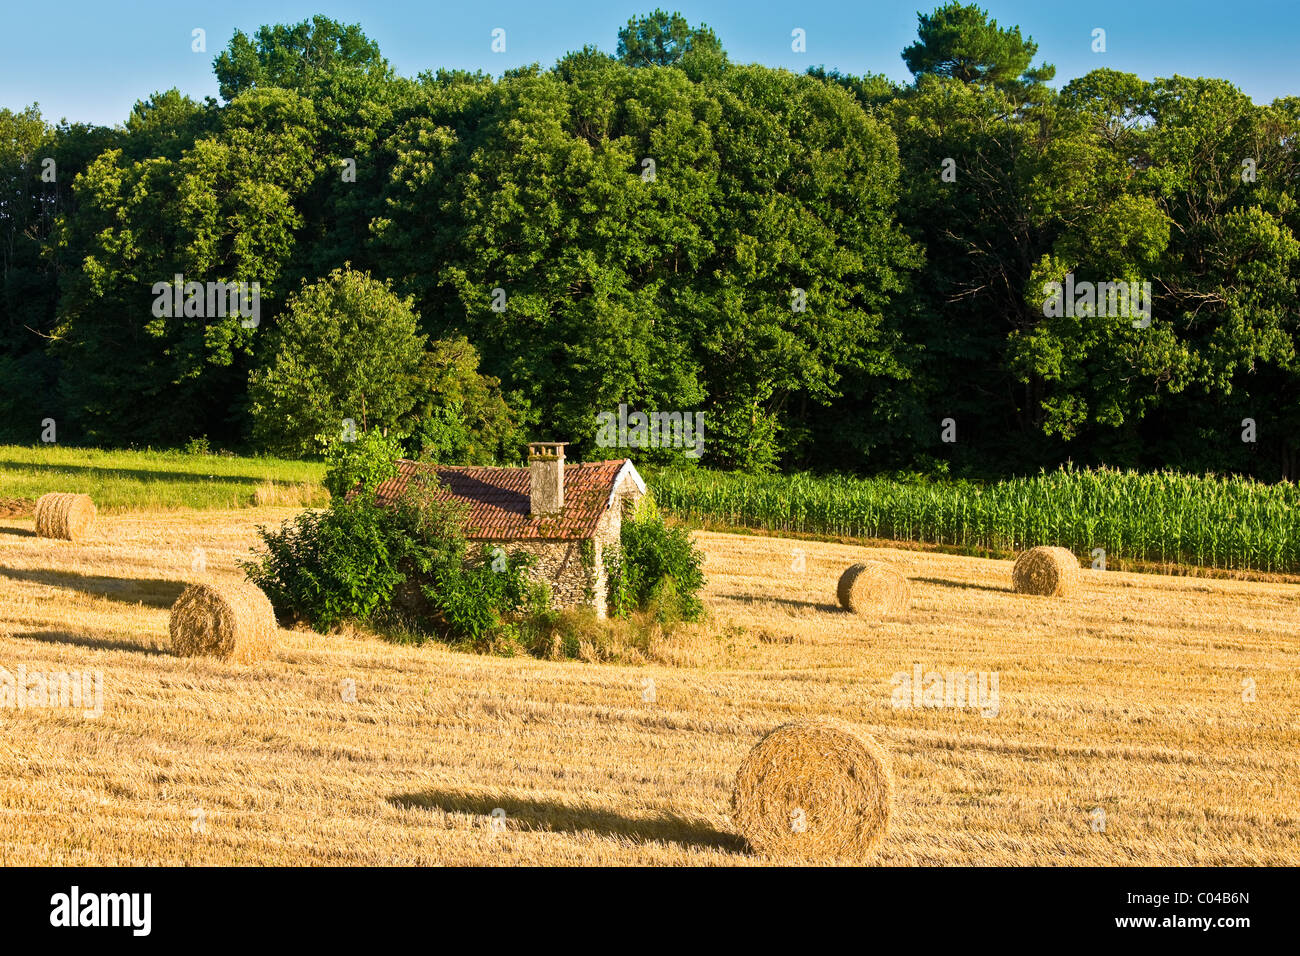 Typical stone barn in wheat field in the Dordogne, France - Stock Image